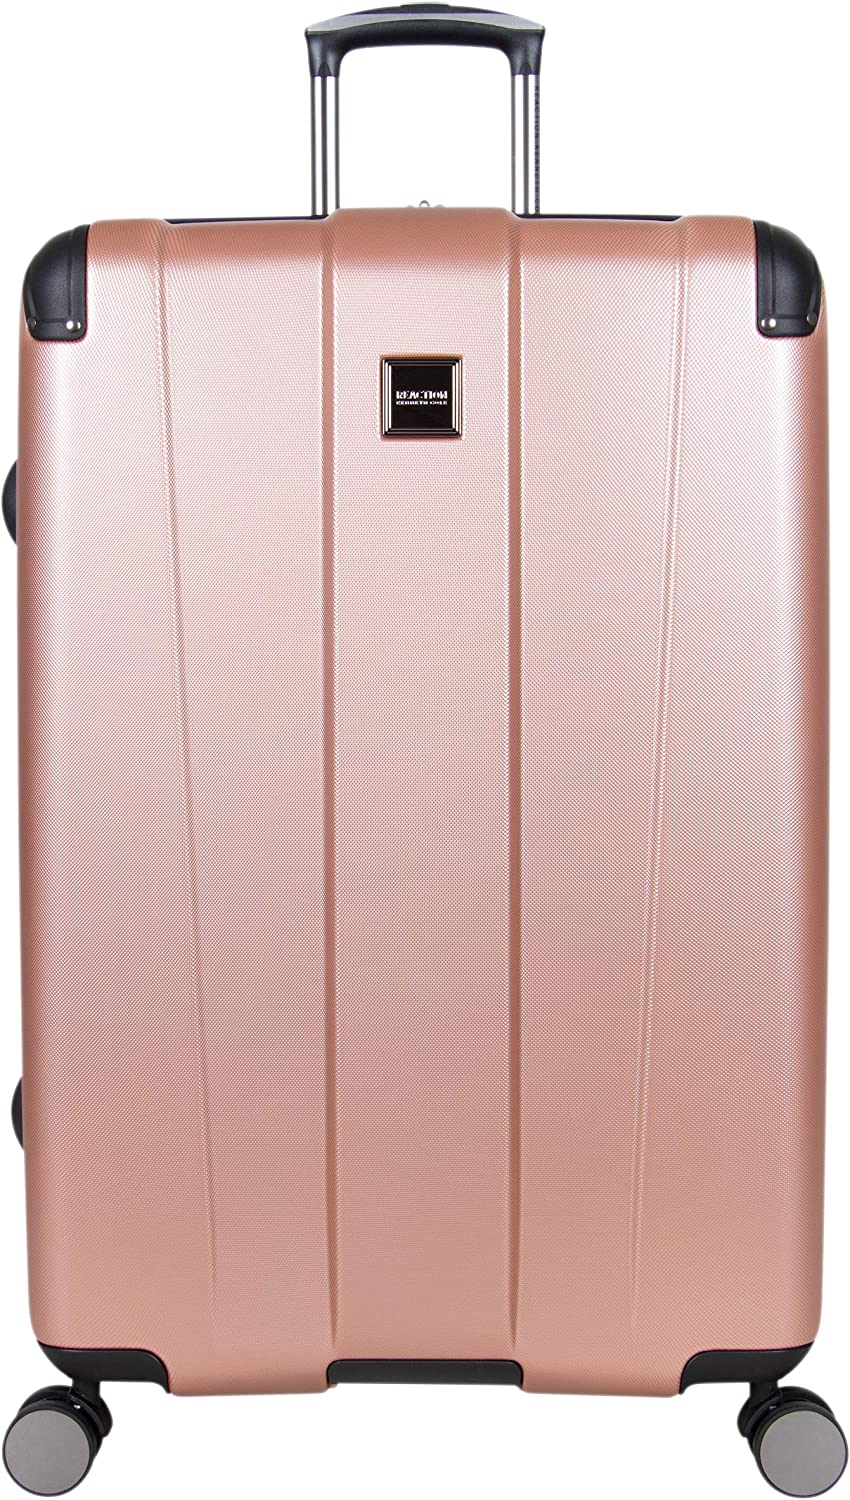 Kenneth Cole Reaction Continuum 28 Lightweight Hardside Expandable 8-Wheel Spinner Checked-Size Travel Luggage, Rose Gold